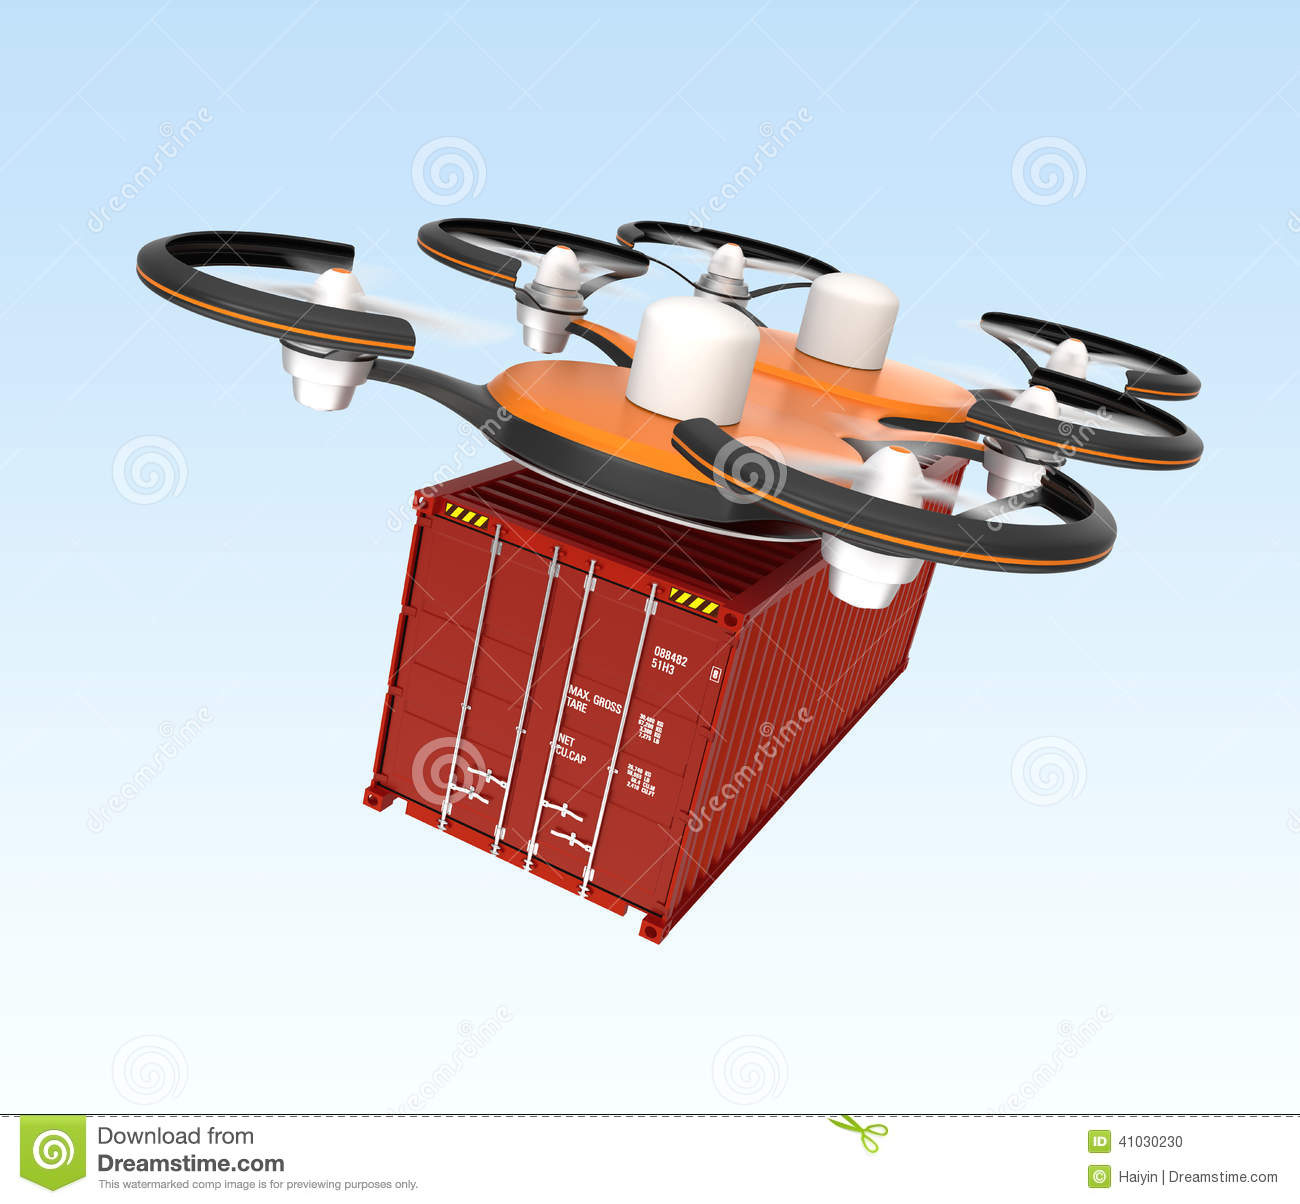 multi rotor drones with Stock Illustration Air Drone Carrying Cargo Container Sky Some Cardboard Boxes Concept Fast Delivery Image41030230 on 2014 The Year The Dji Phantom Became Famous moreover Stock Illustration Air Drone Carrying Cargo Container Sky Some Cardboard Boxes Concept Fast Delivery Image41030230 additionally Whats Your Favorite Multi Rotor Design additionally Game Of Drones additionally Drones E Agricultura Saiba  o Aproveitar Essa  binacao Promissora.